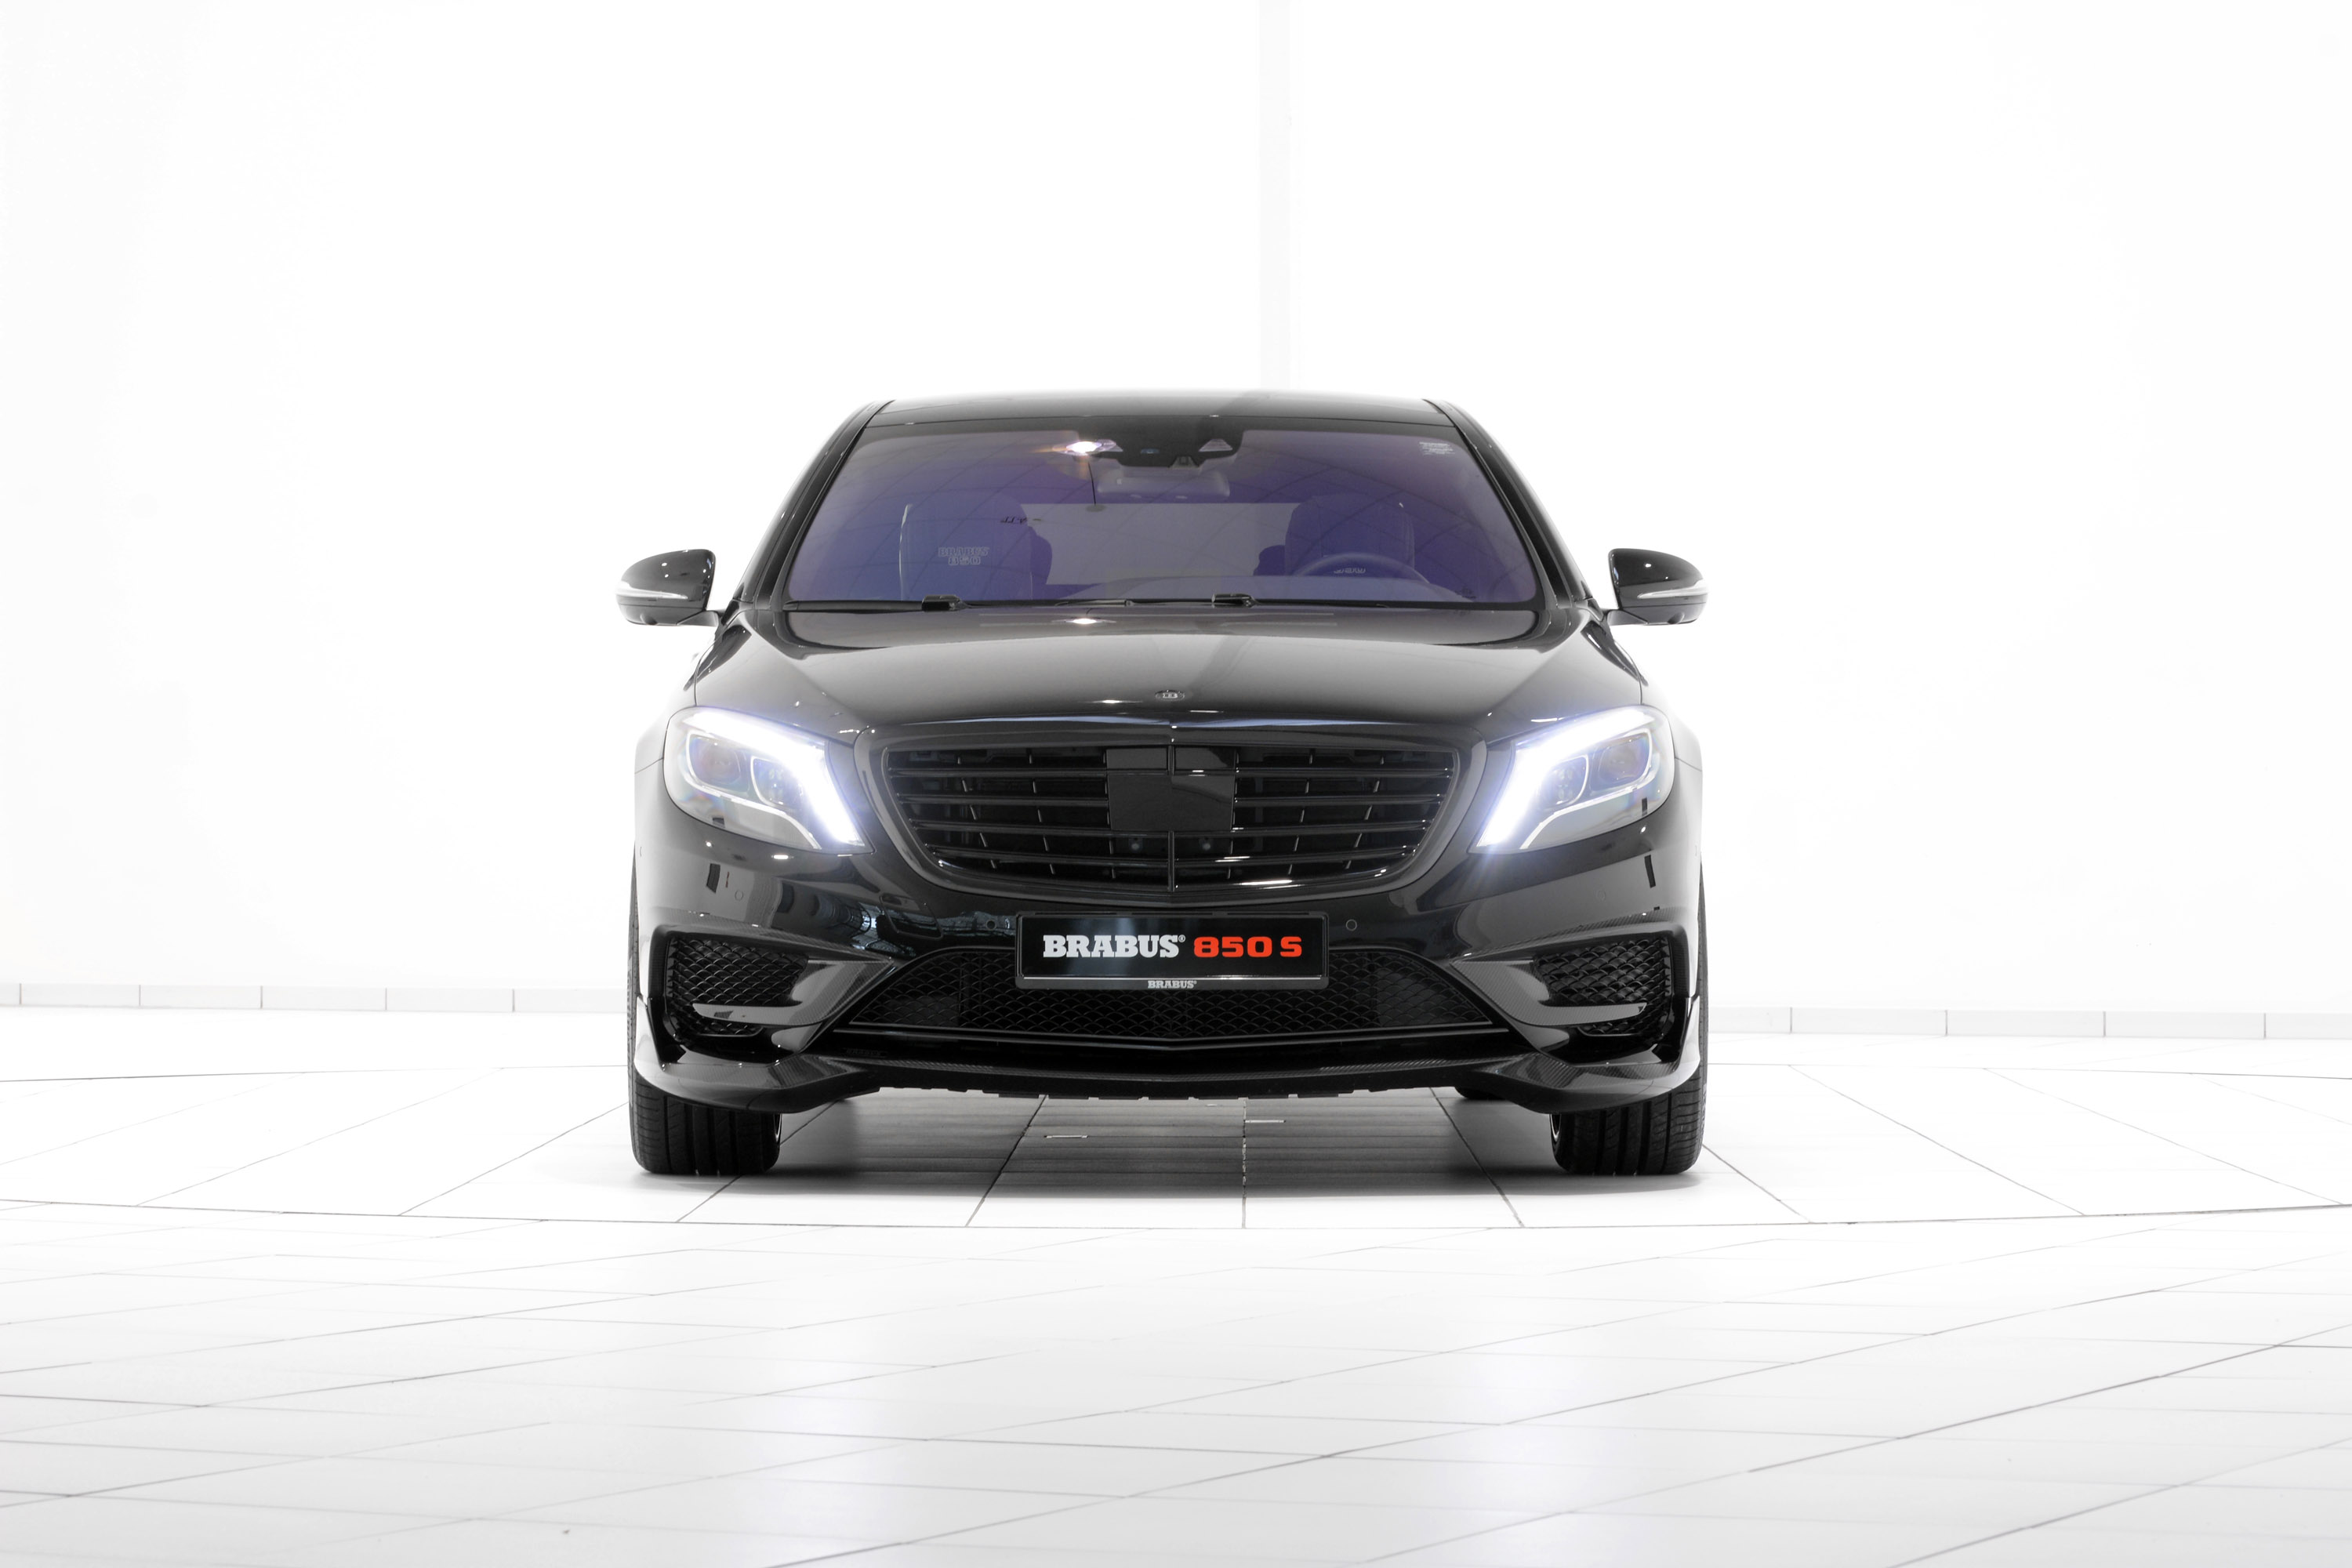 Brabus 850 S based on 2014 Mercedes-Benz S 63 AMG